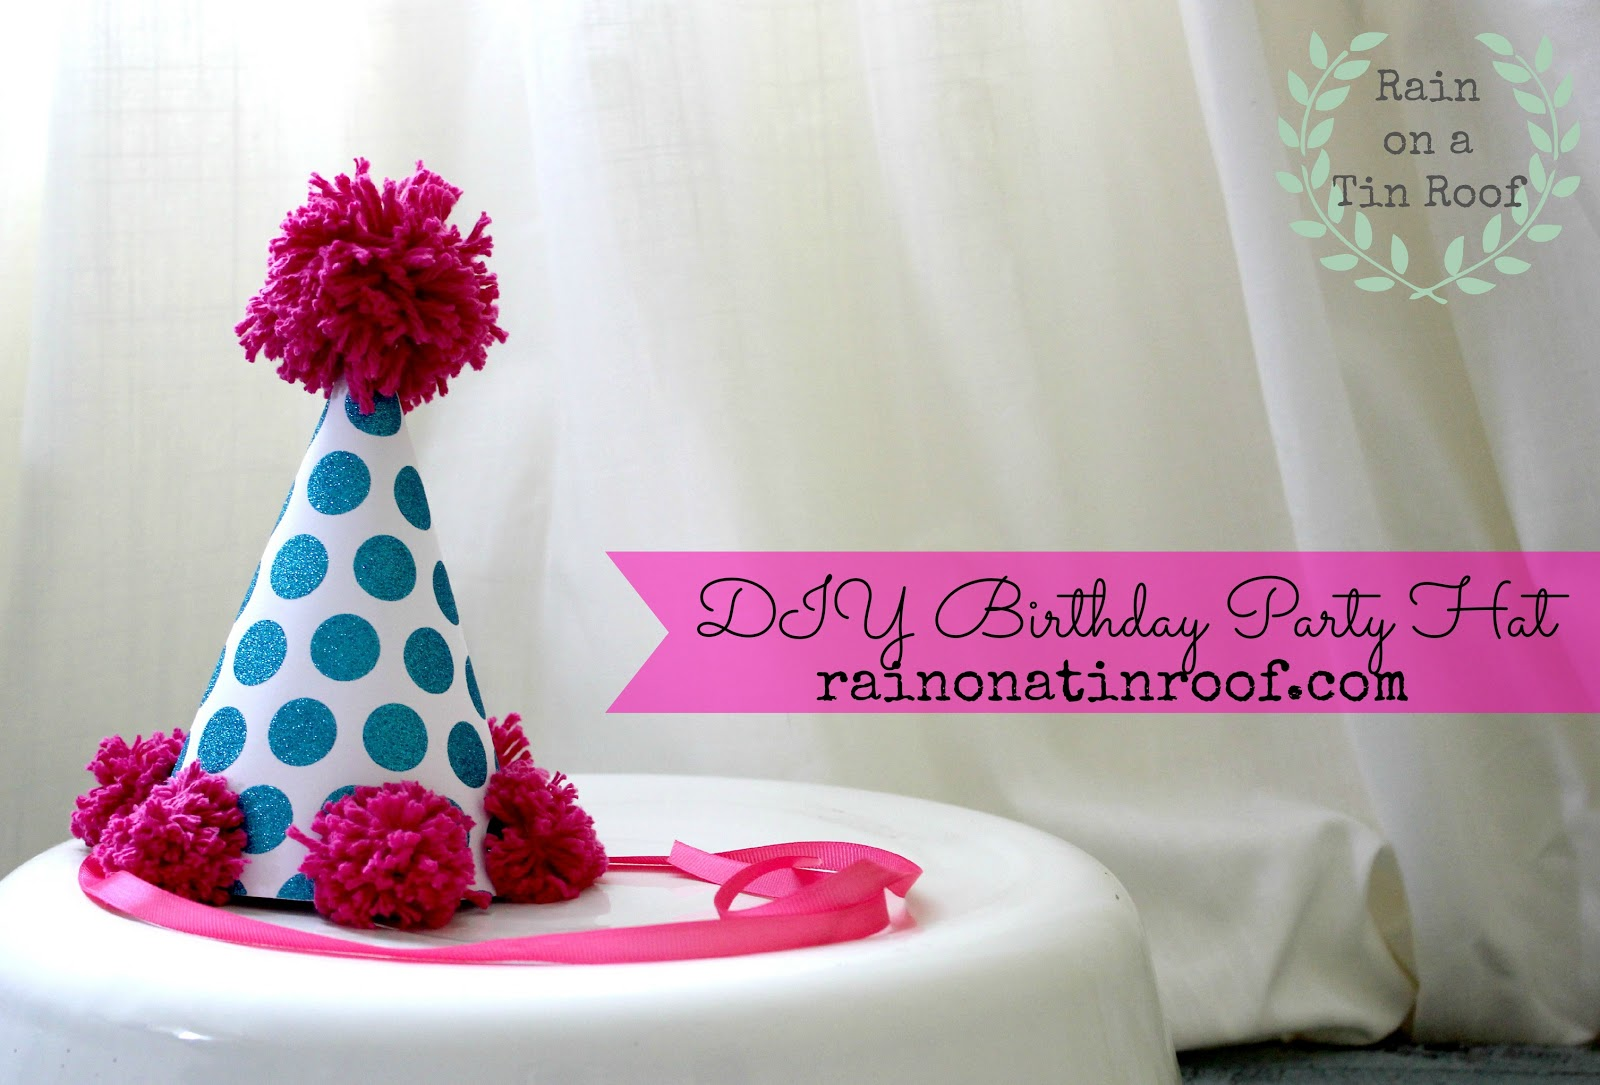 Diy Birthday Party Hat For Less Than 5 In 15 Minutes